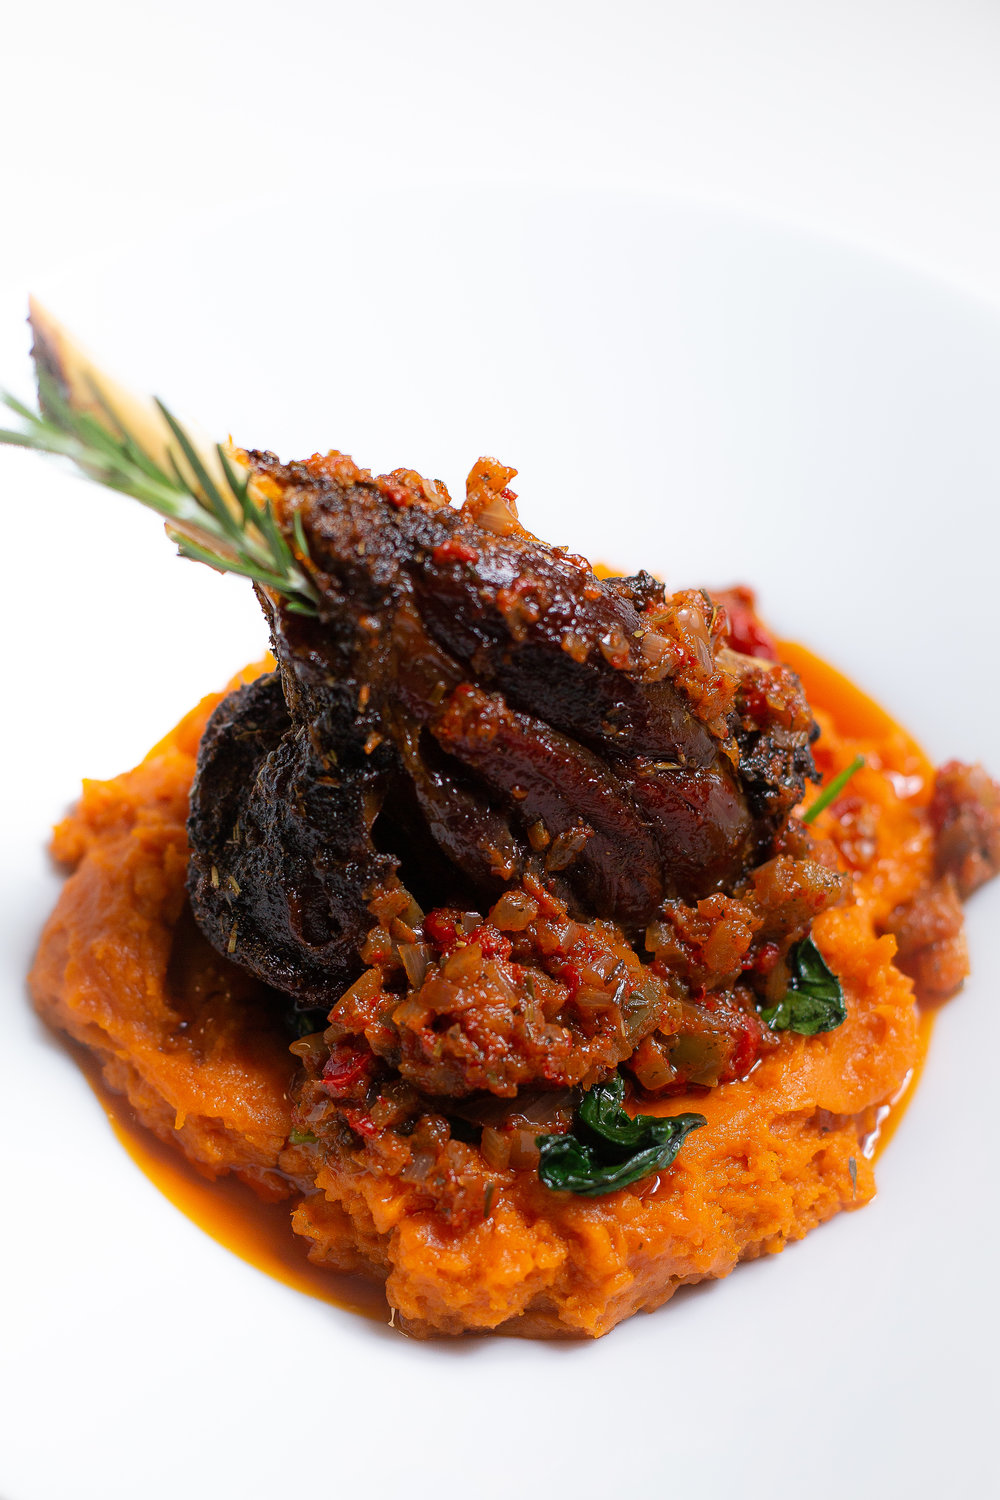 Braised Lamb Shank on a bed of sauteed spinach and yam cottage puree